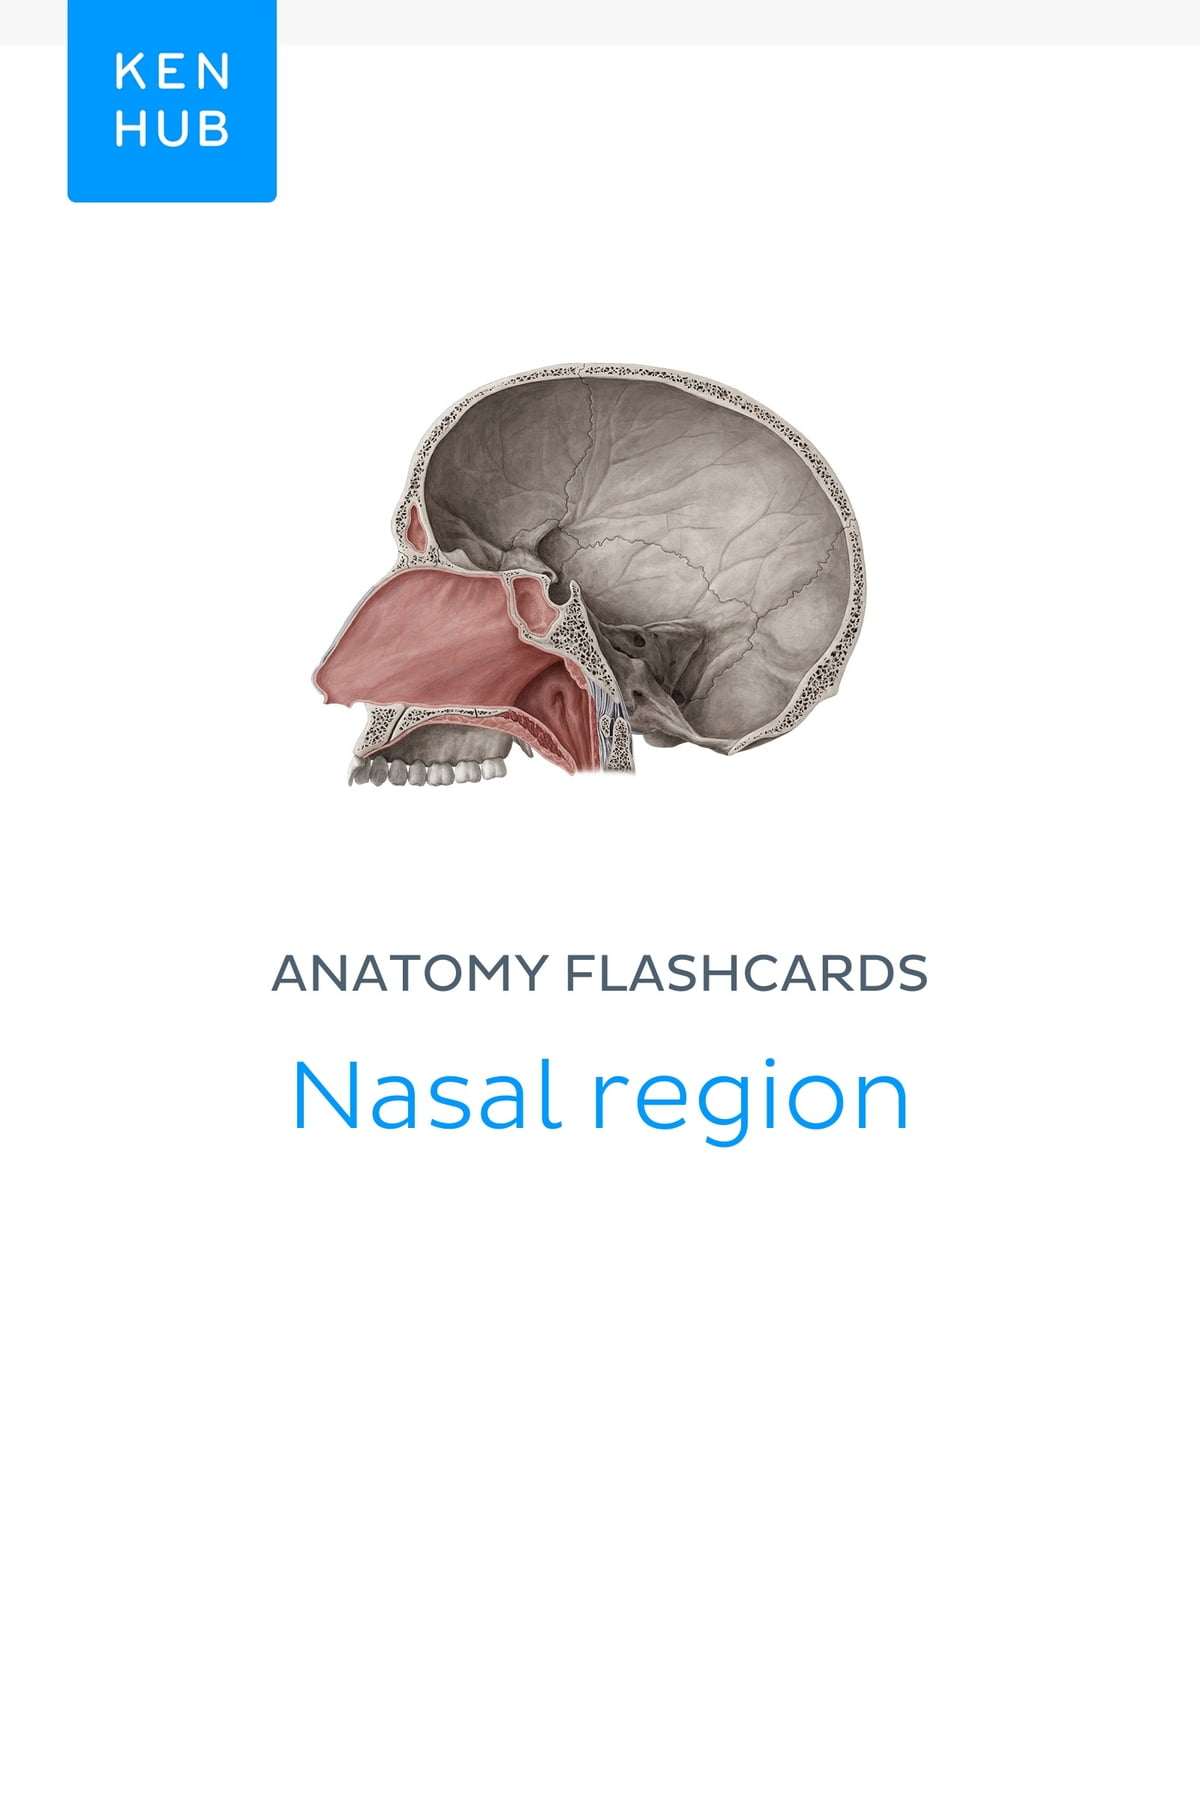 Anatomy Flashcards Nasal Region Ebook By Kenhub 9783962980788